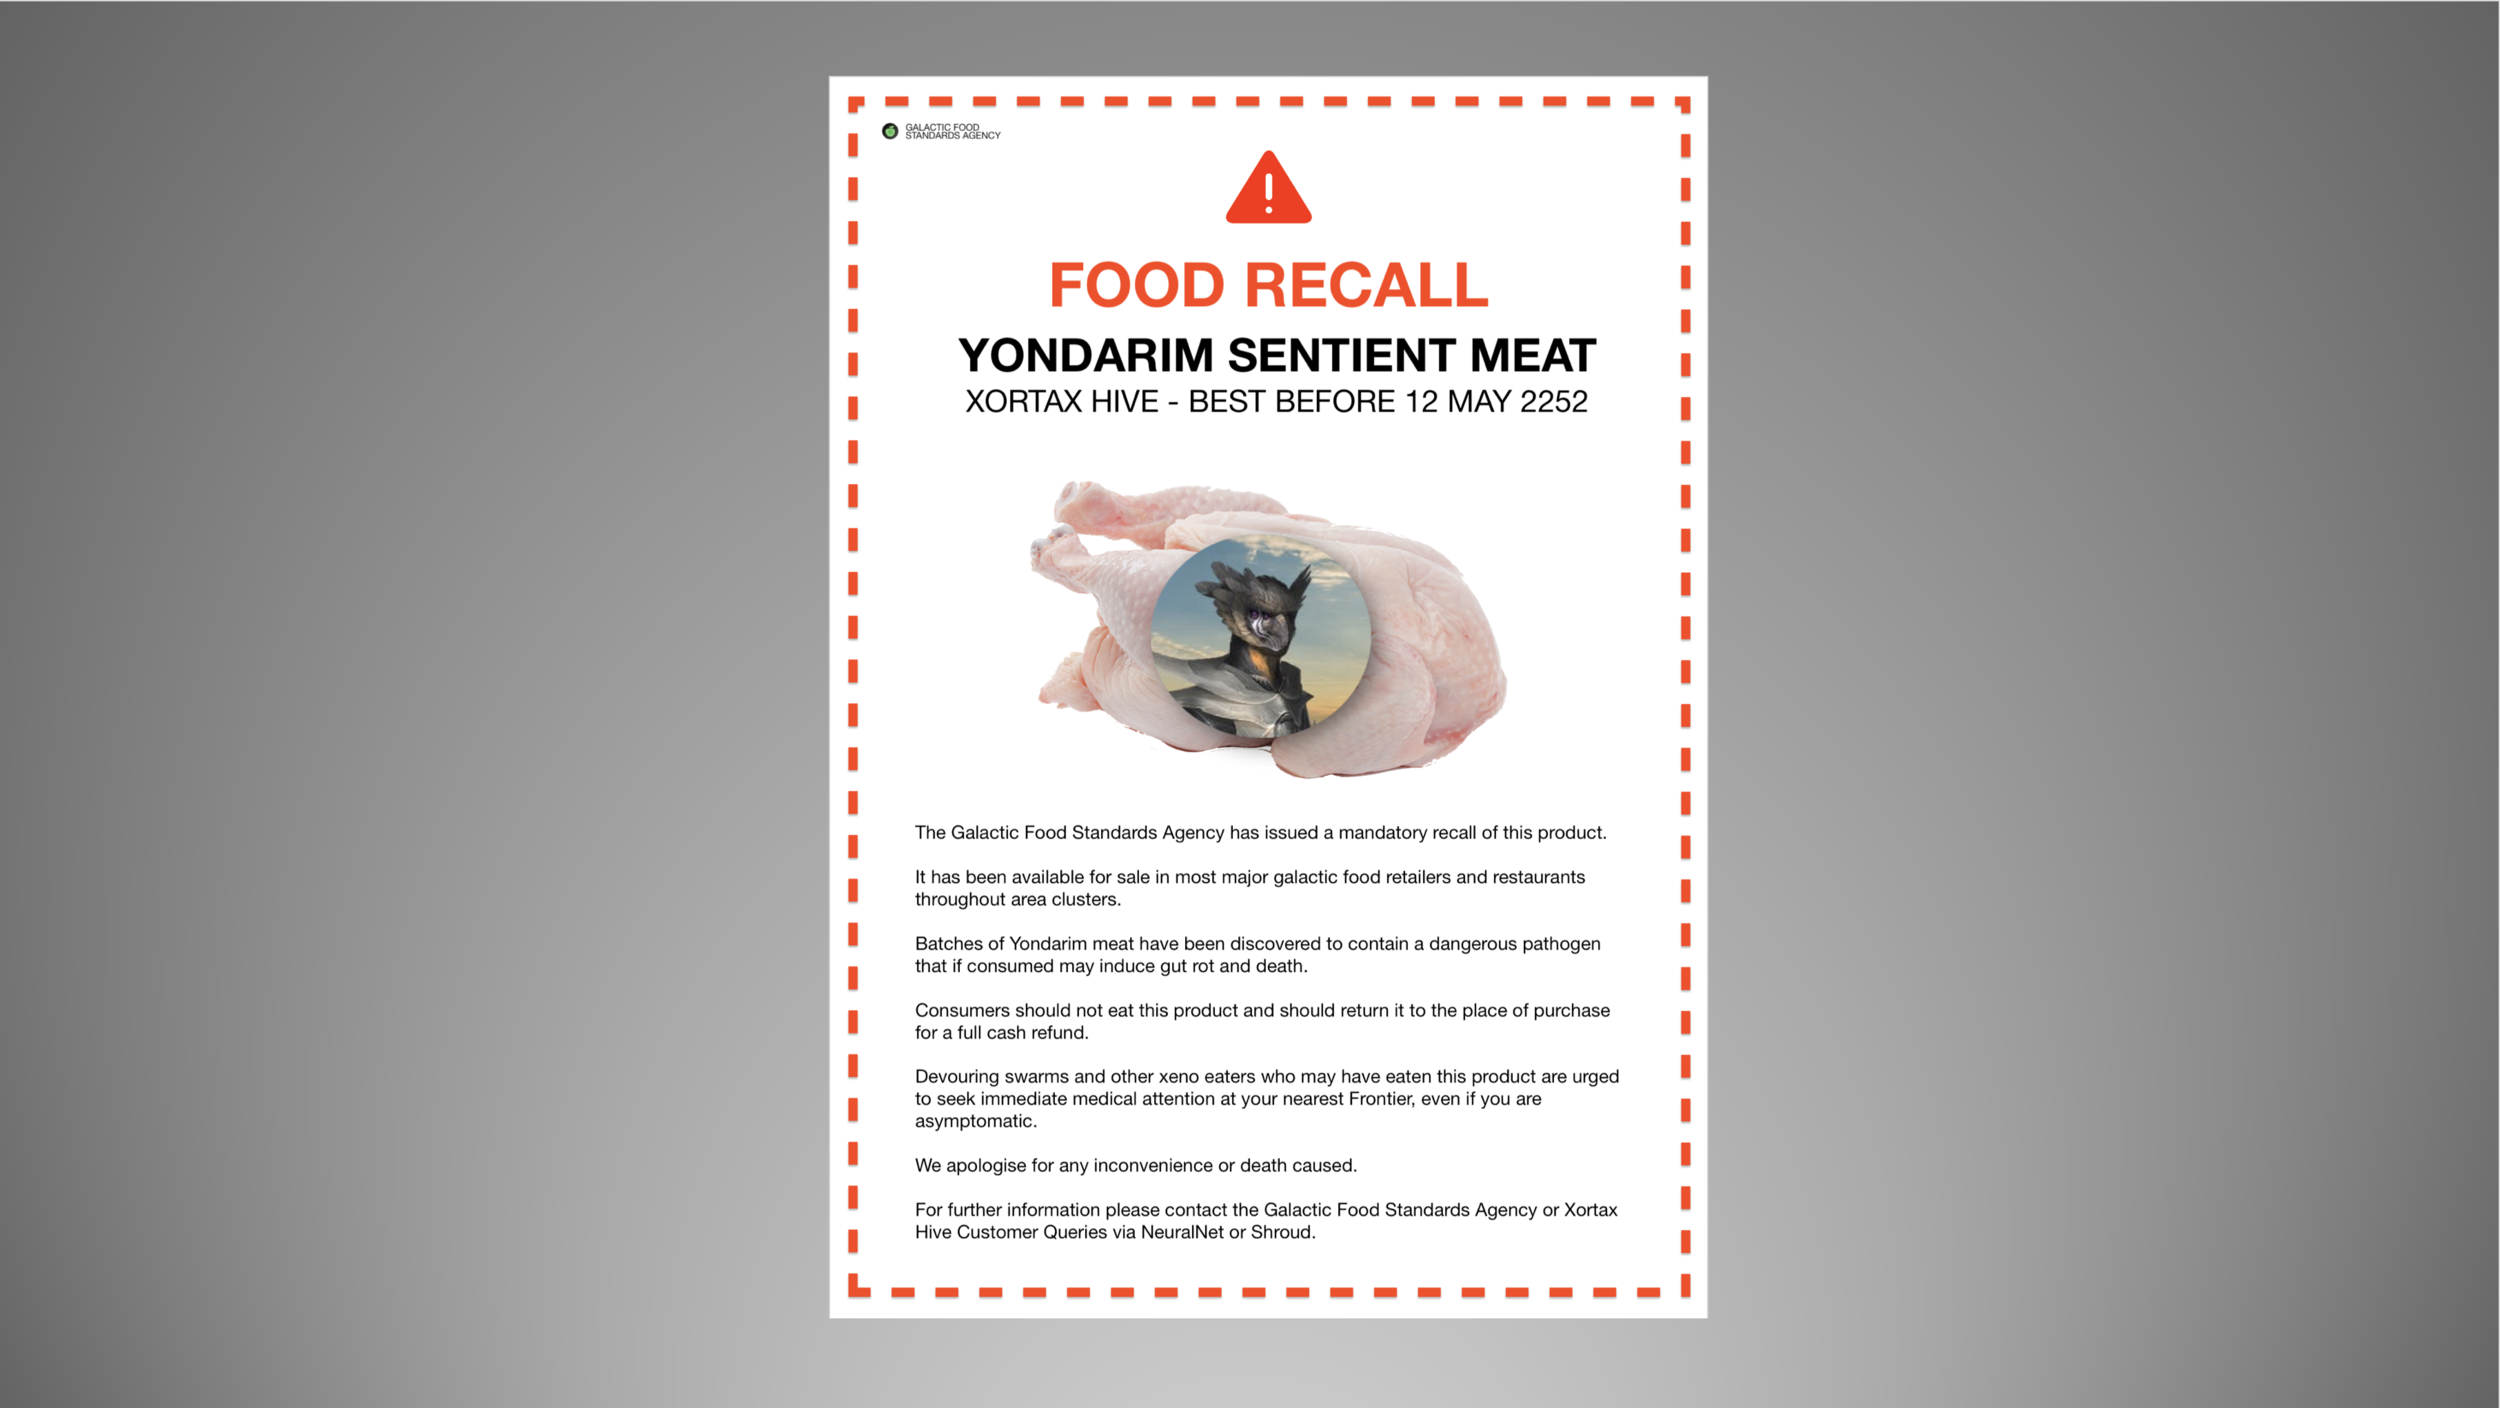 Image: The Galactic Food Standards Authority have released an urgent food recall for all Yondarim meat best before May 2252.